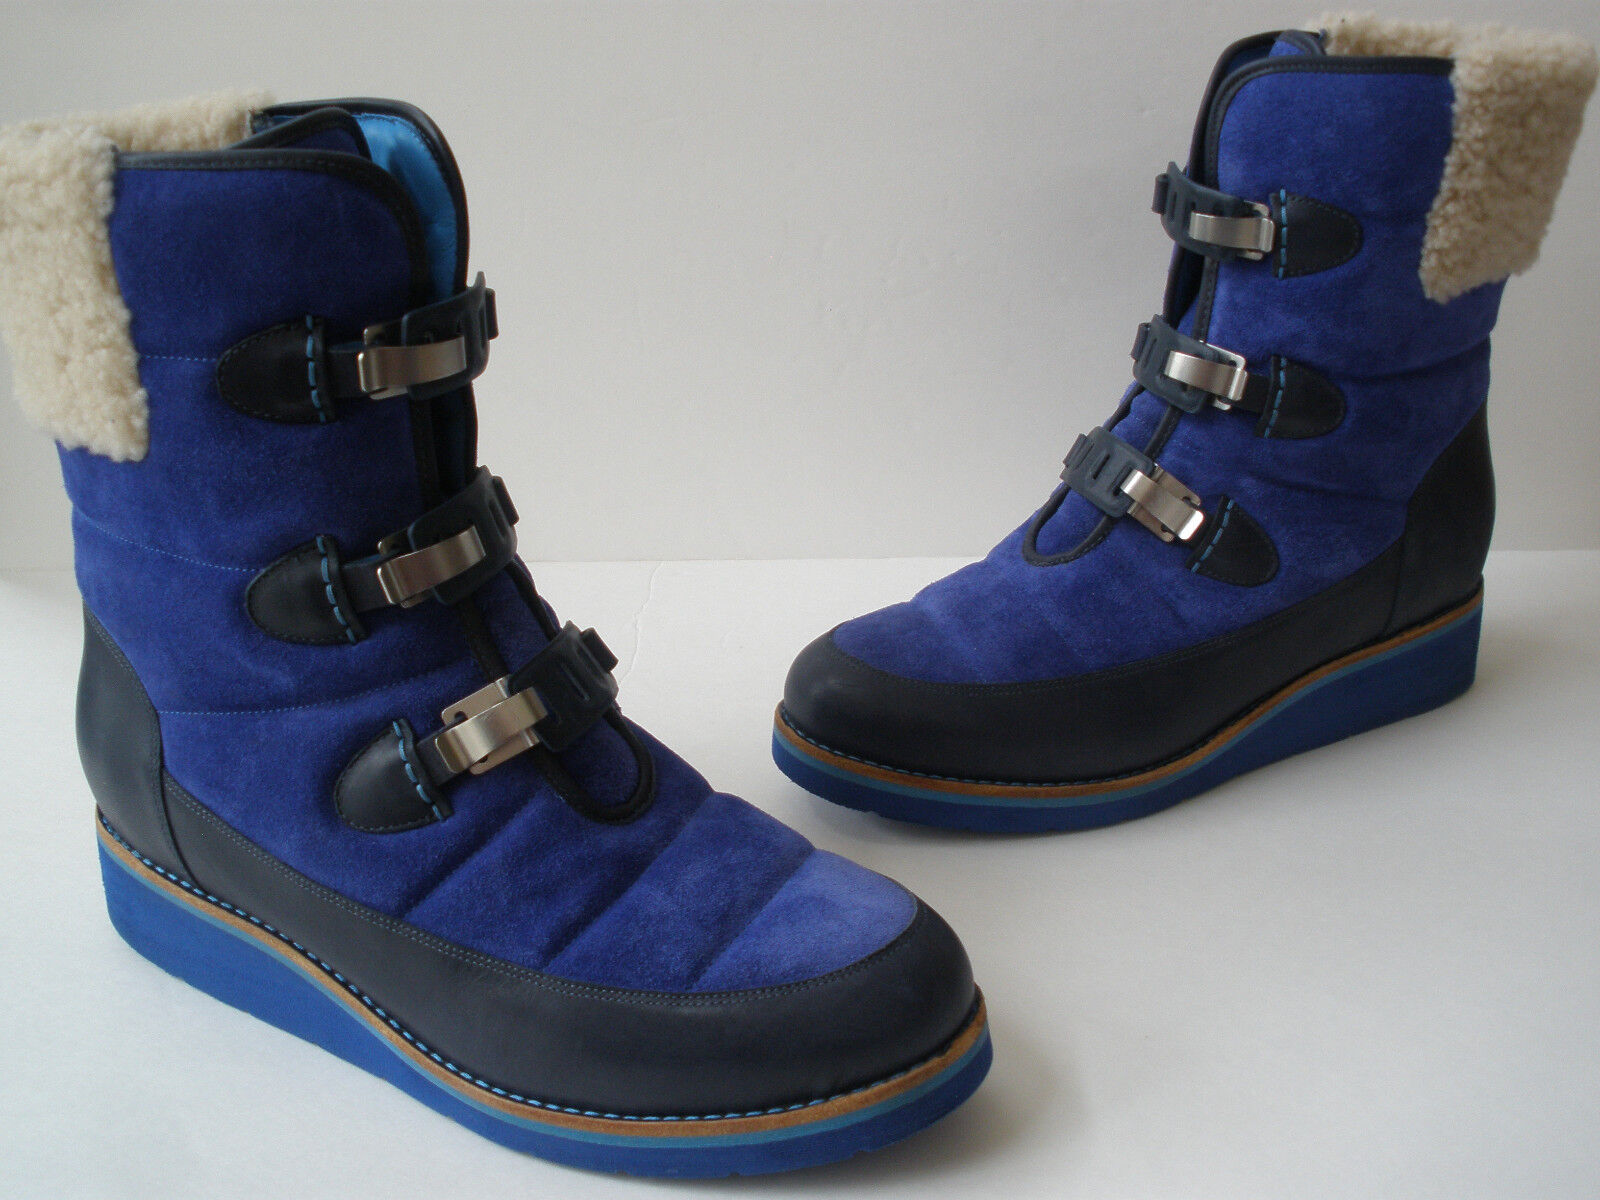 COLE HAAN NIKE AIR LEATHER WATERPROOF SNOW BOOTS SIZE US 10 SUPER HOT UNIQUE